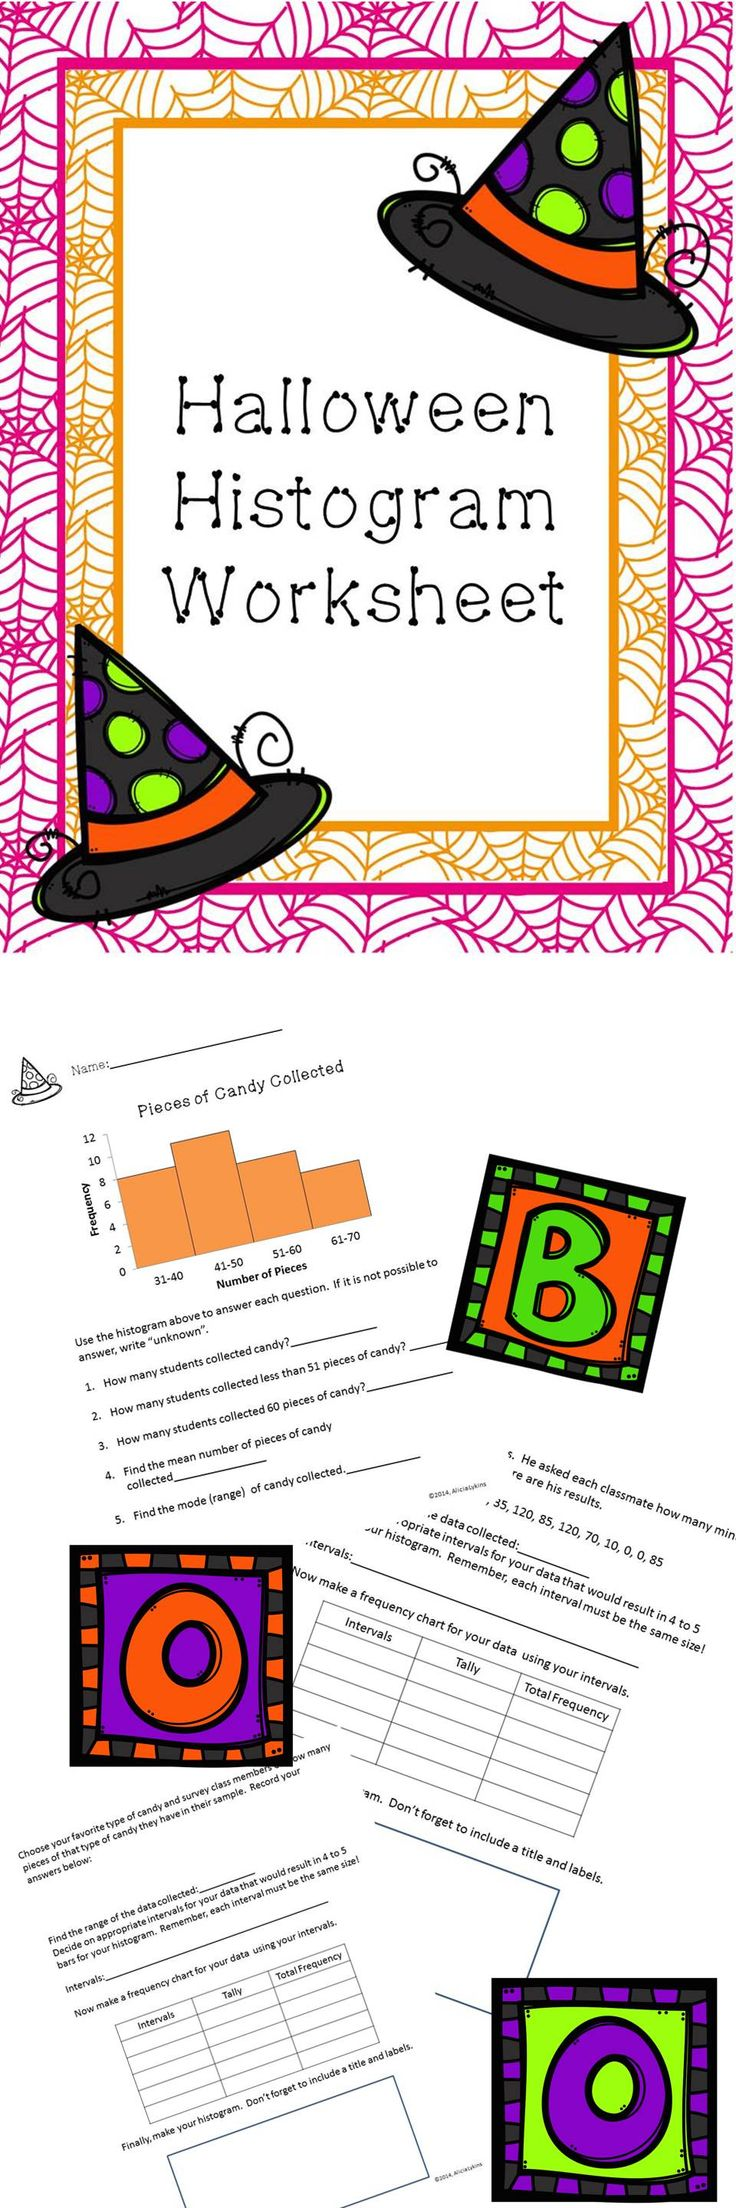 Spookysweet Histogram Worksheet! Making And Interpreting Histograms As  Well As The Option For